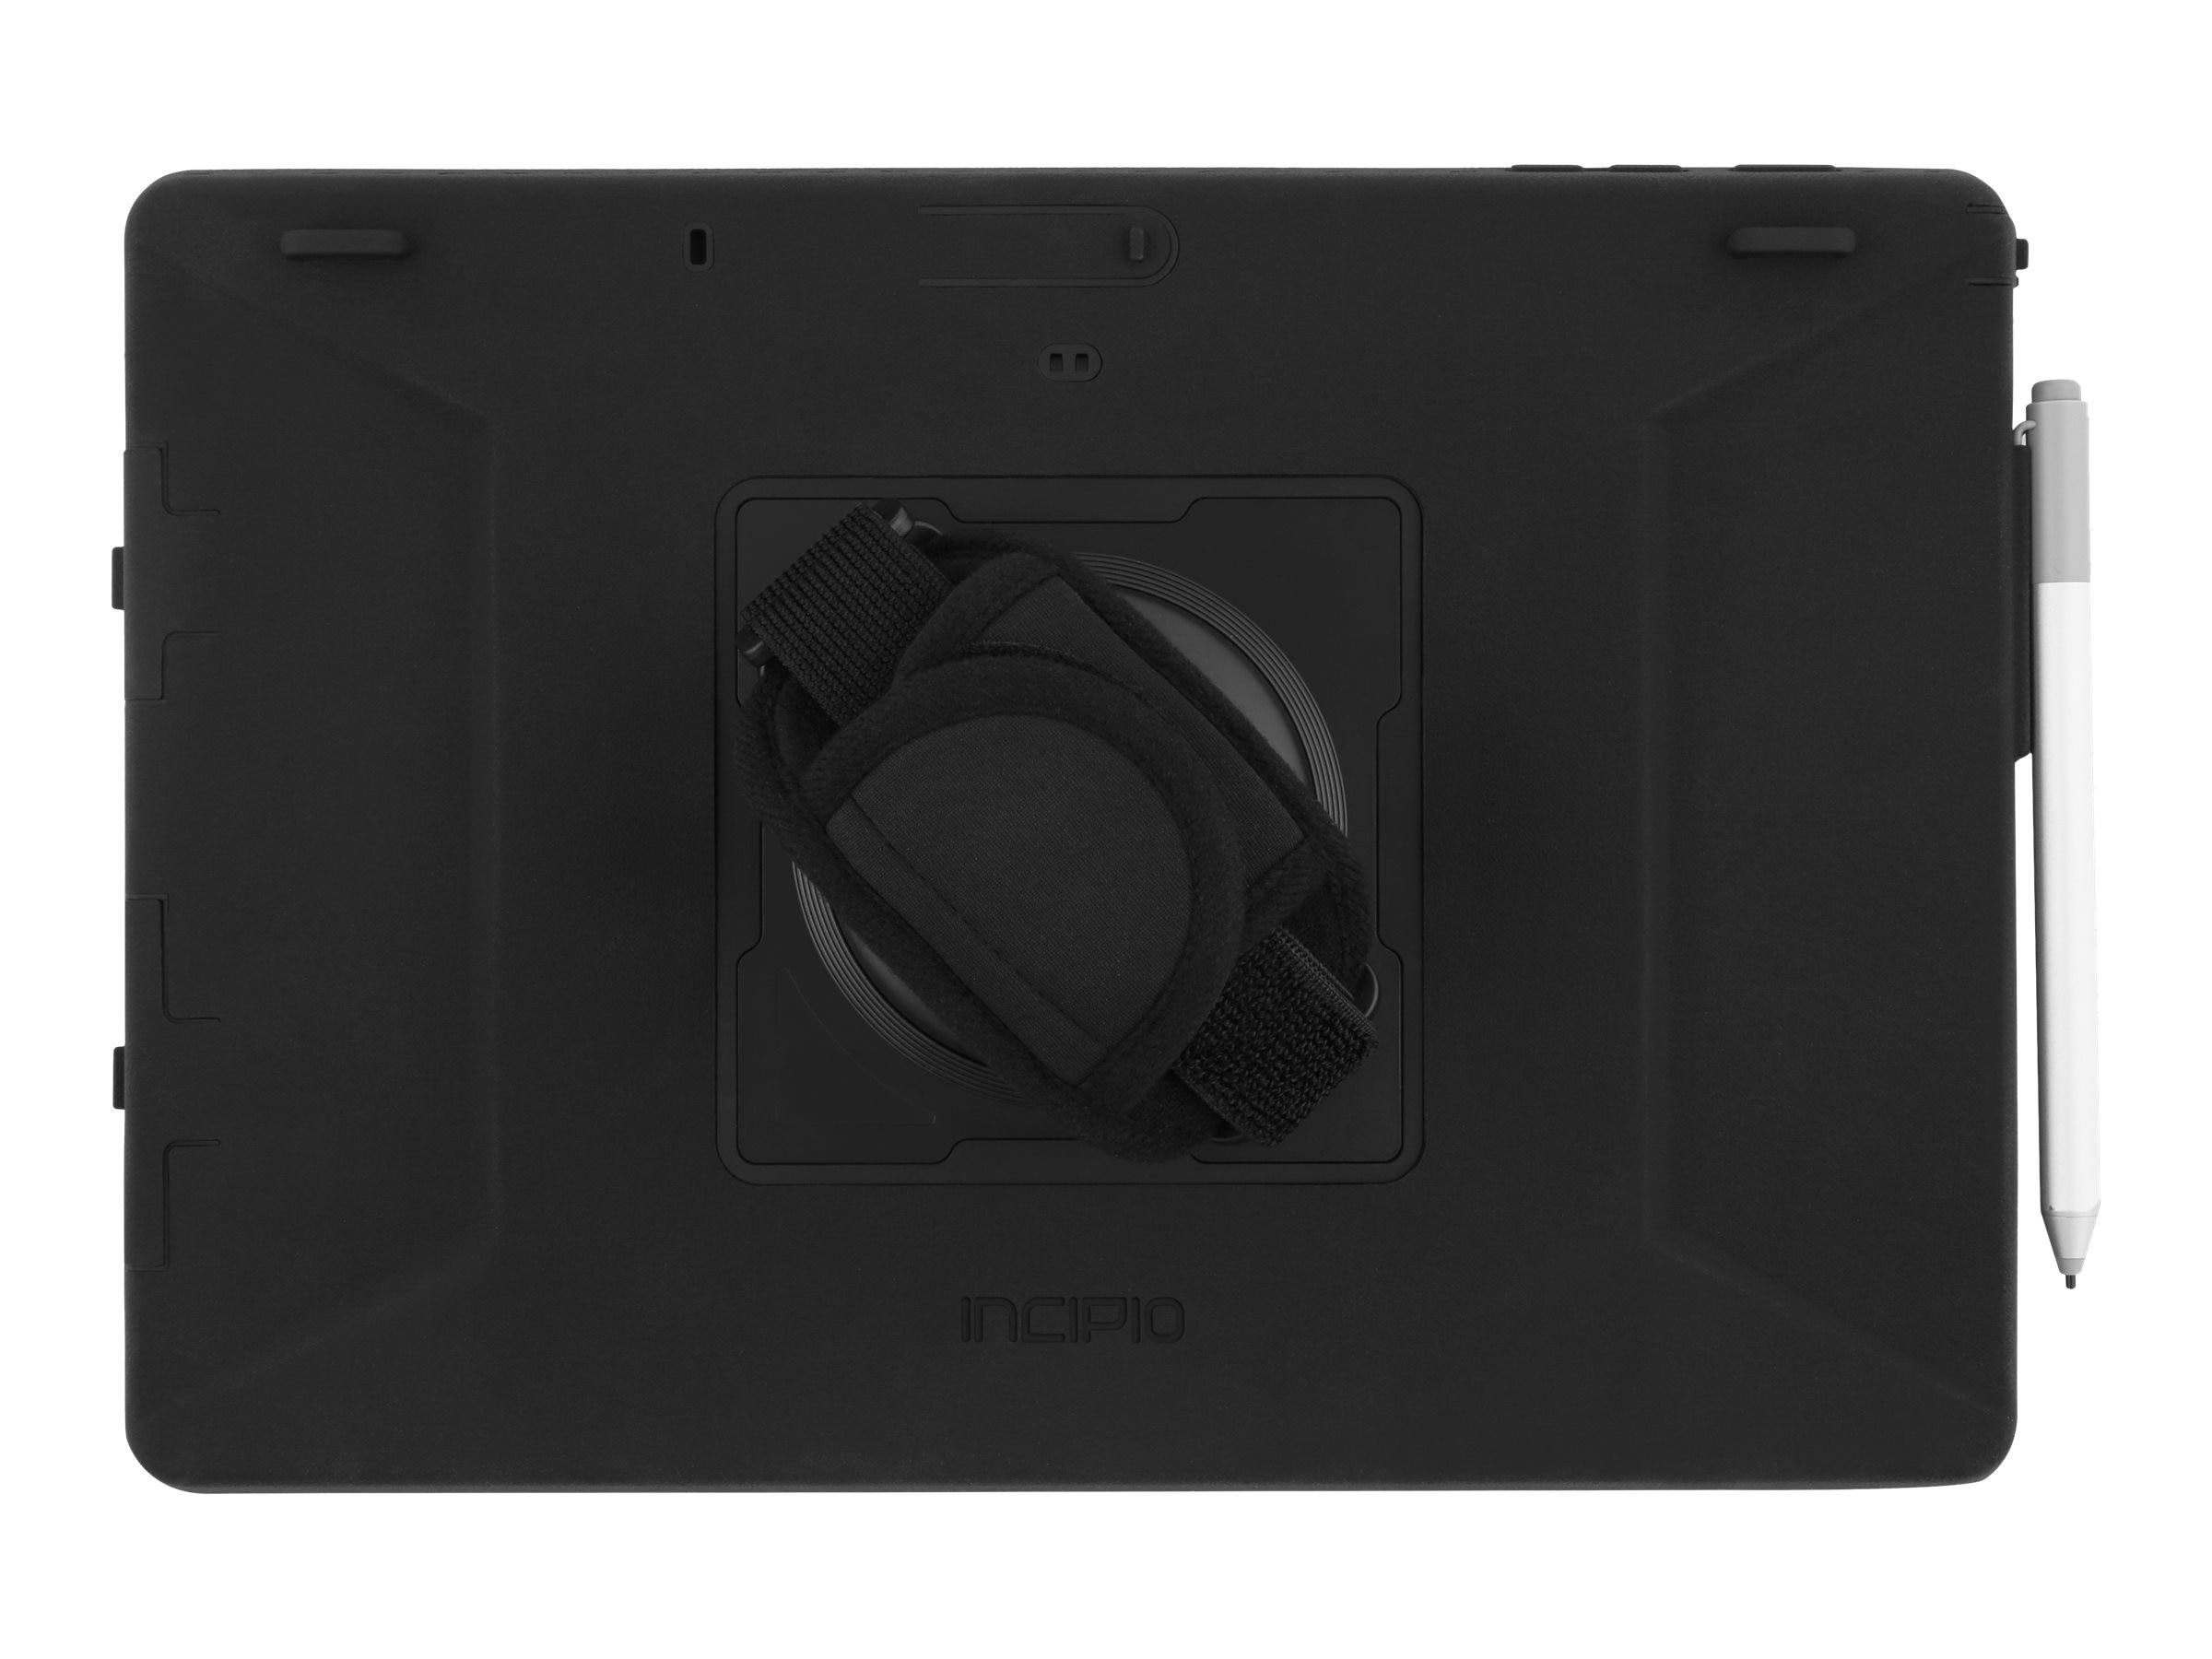 Incipio Technology PW-271-BLK Image 2